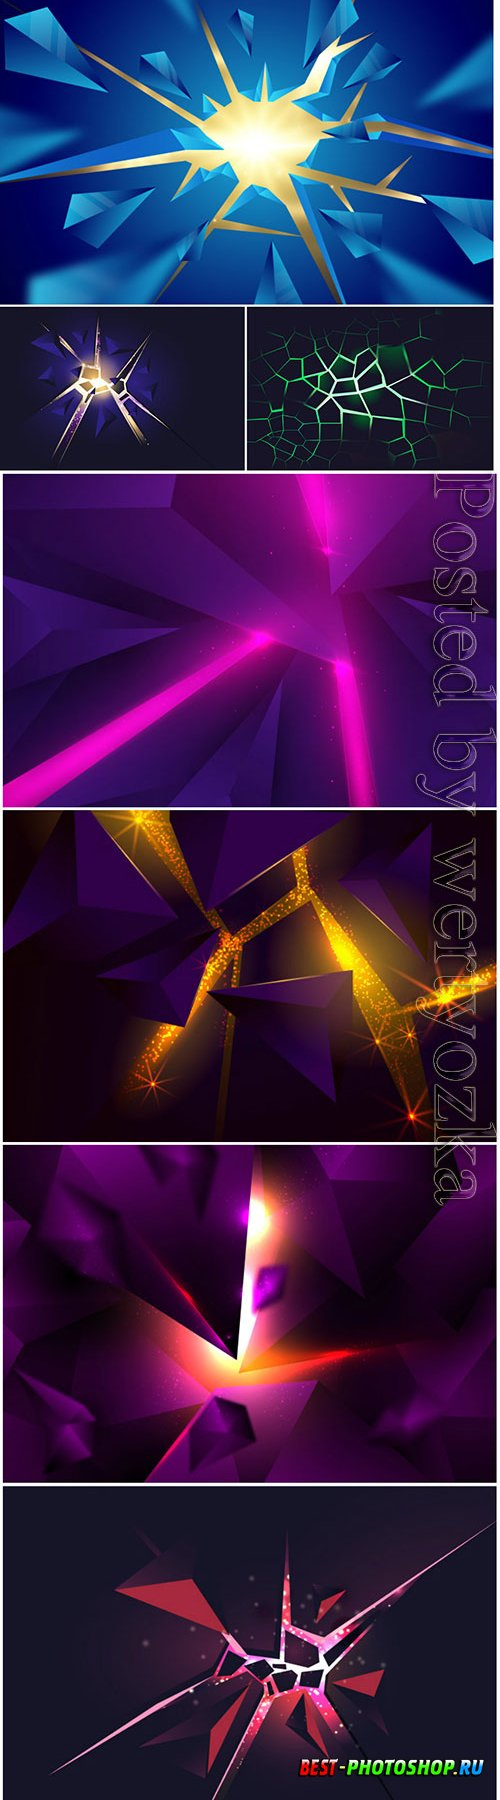 3d explosion with light vector background